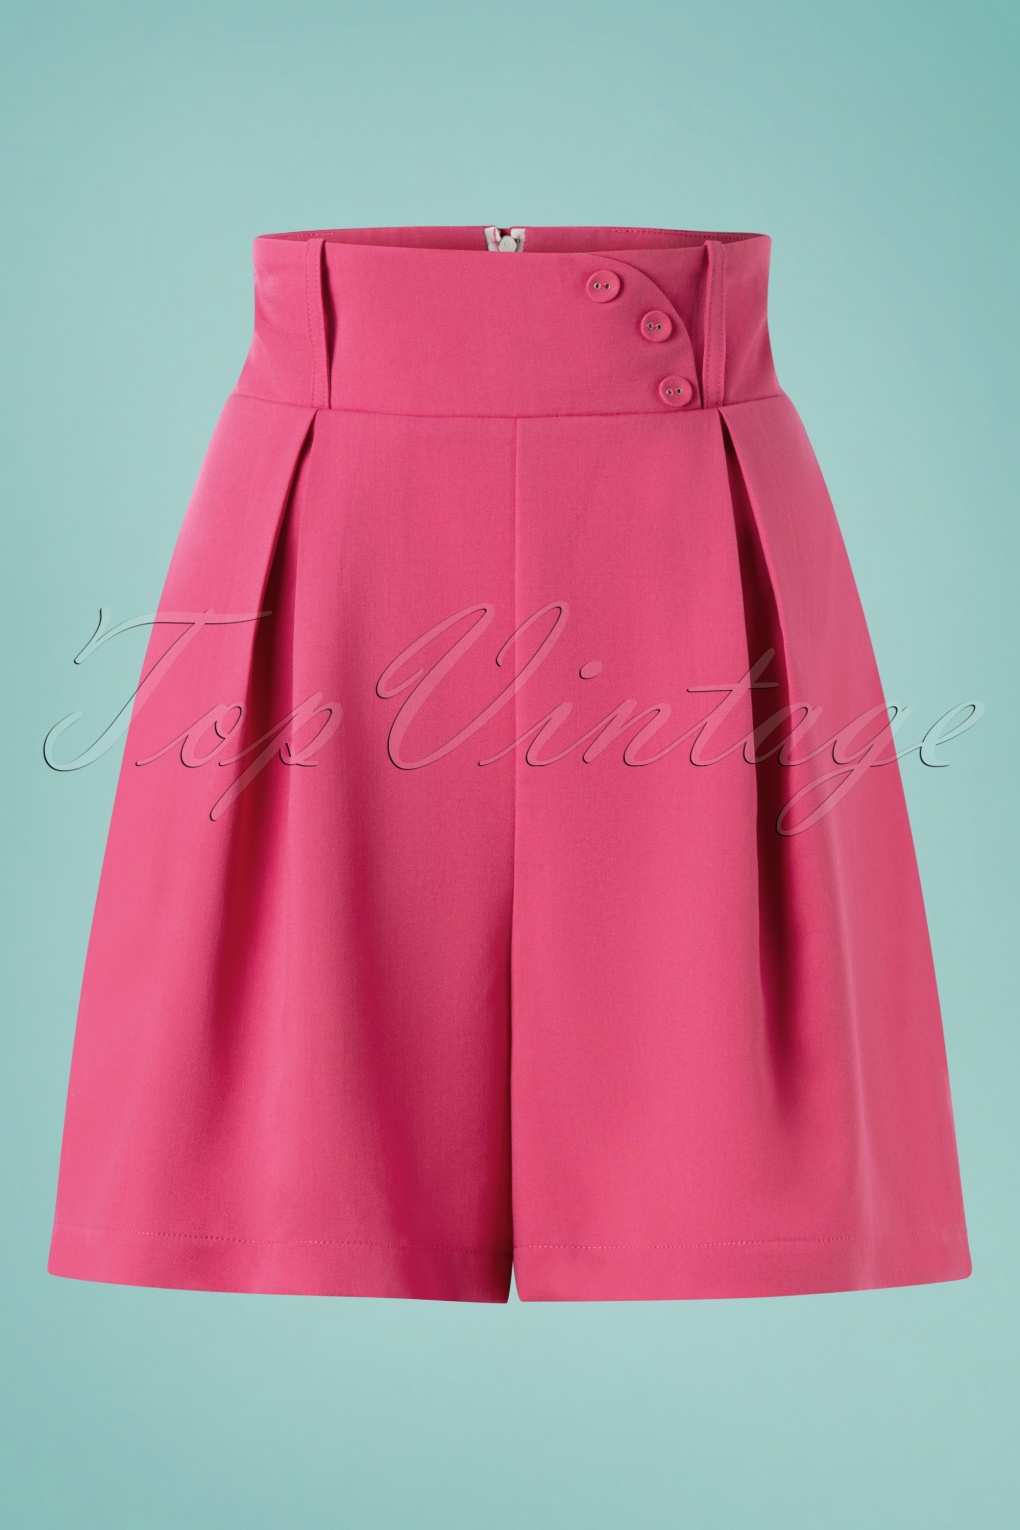 1950s Pants History for Women 50s Paris Shorts in Pink £31.46 AT vintagedancer.com